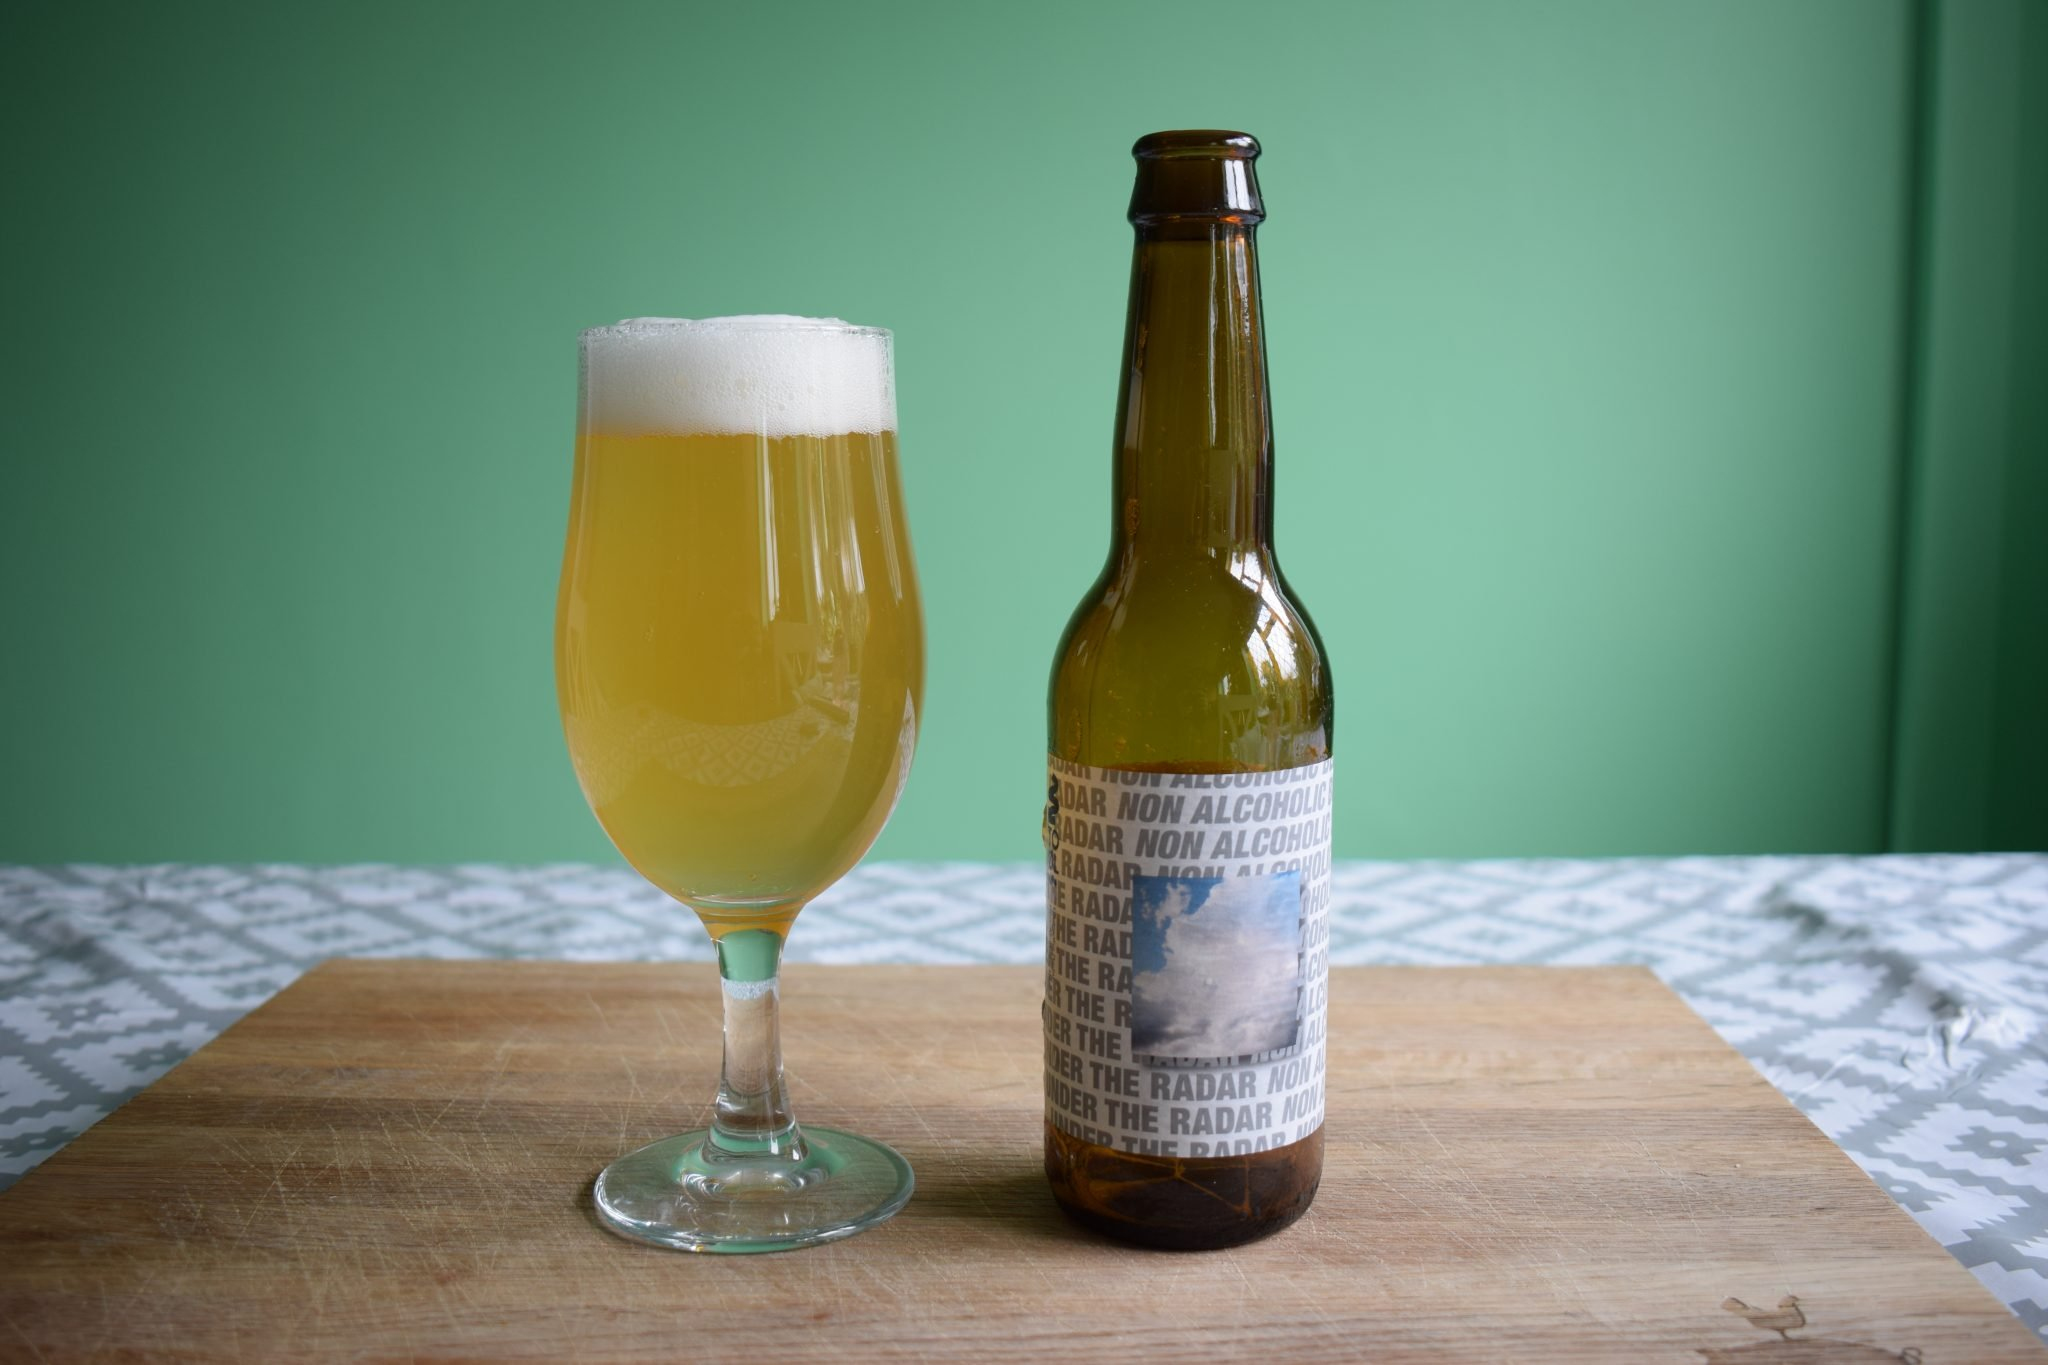 """Under the Radar"" (0.4%) by To Øl"